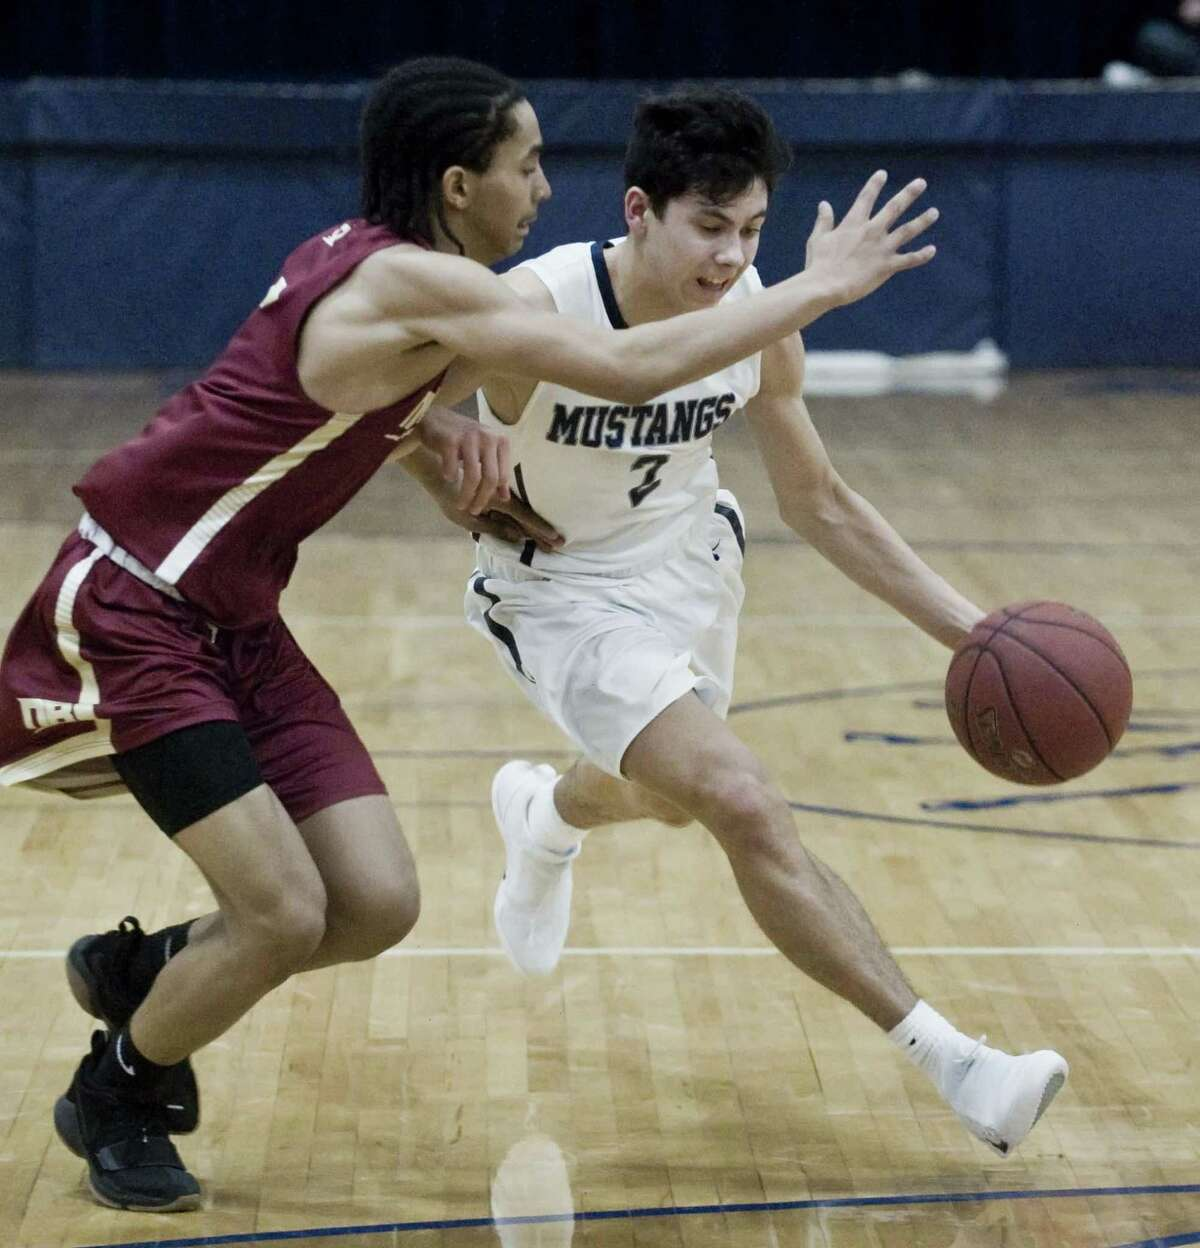 New Britain High School's Isaiah Jenkins guards Immaculate High School's Michael Basile in the Division II boys basketball quarterfinals against New Britain High School, played at Immaculate. Monday, March 12, 2018